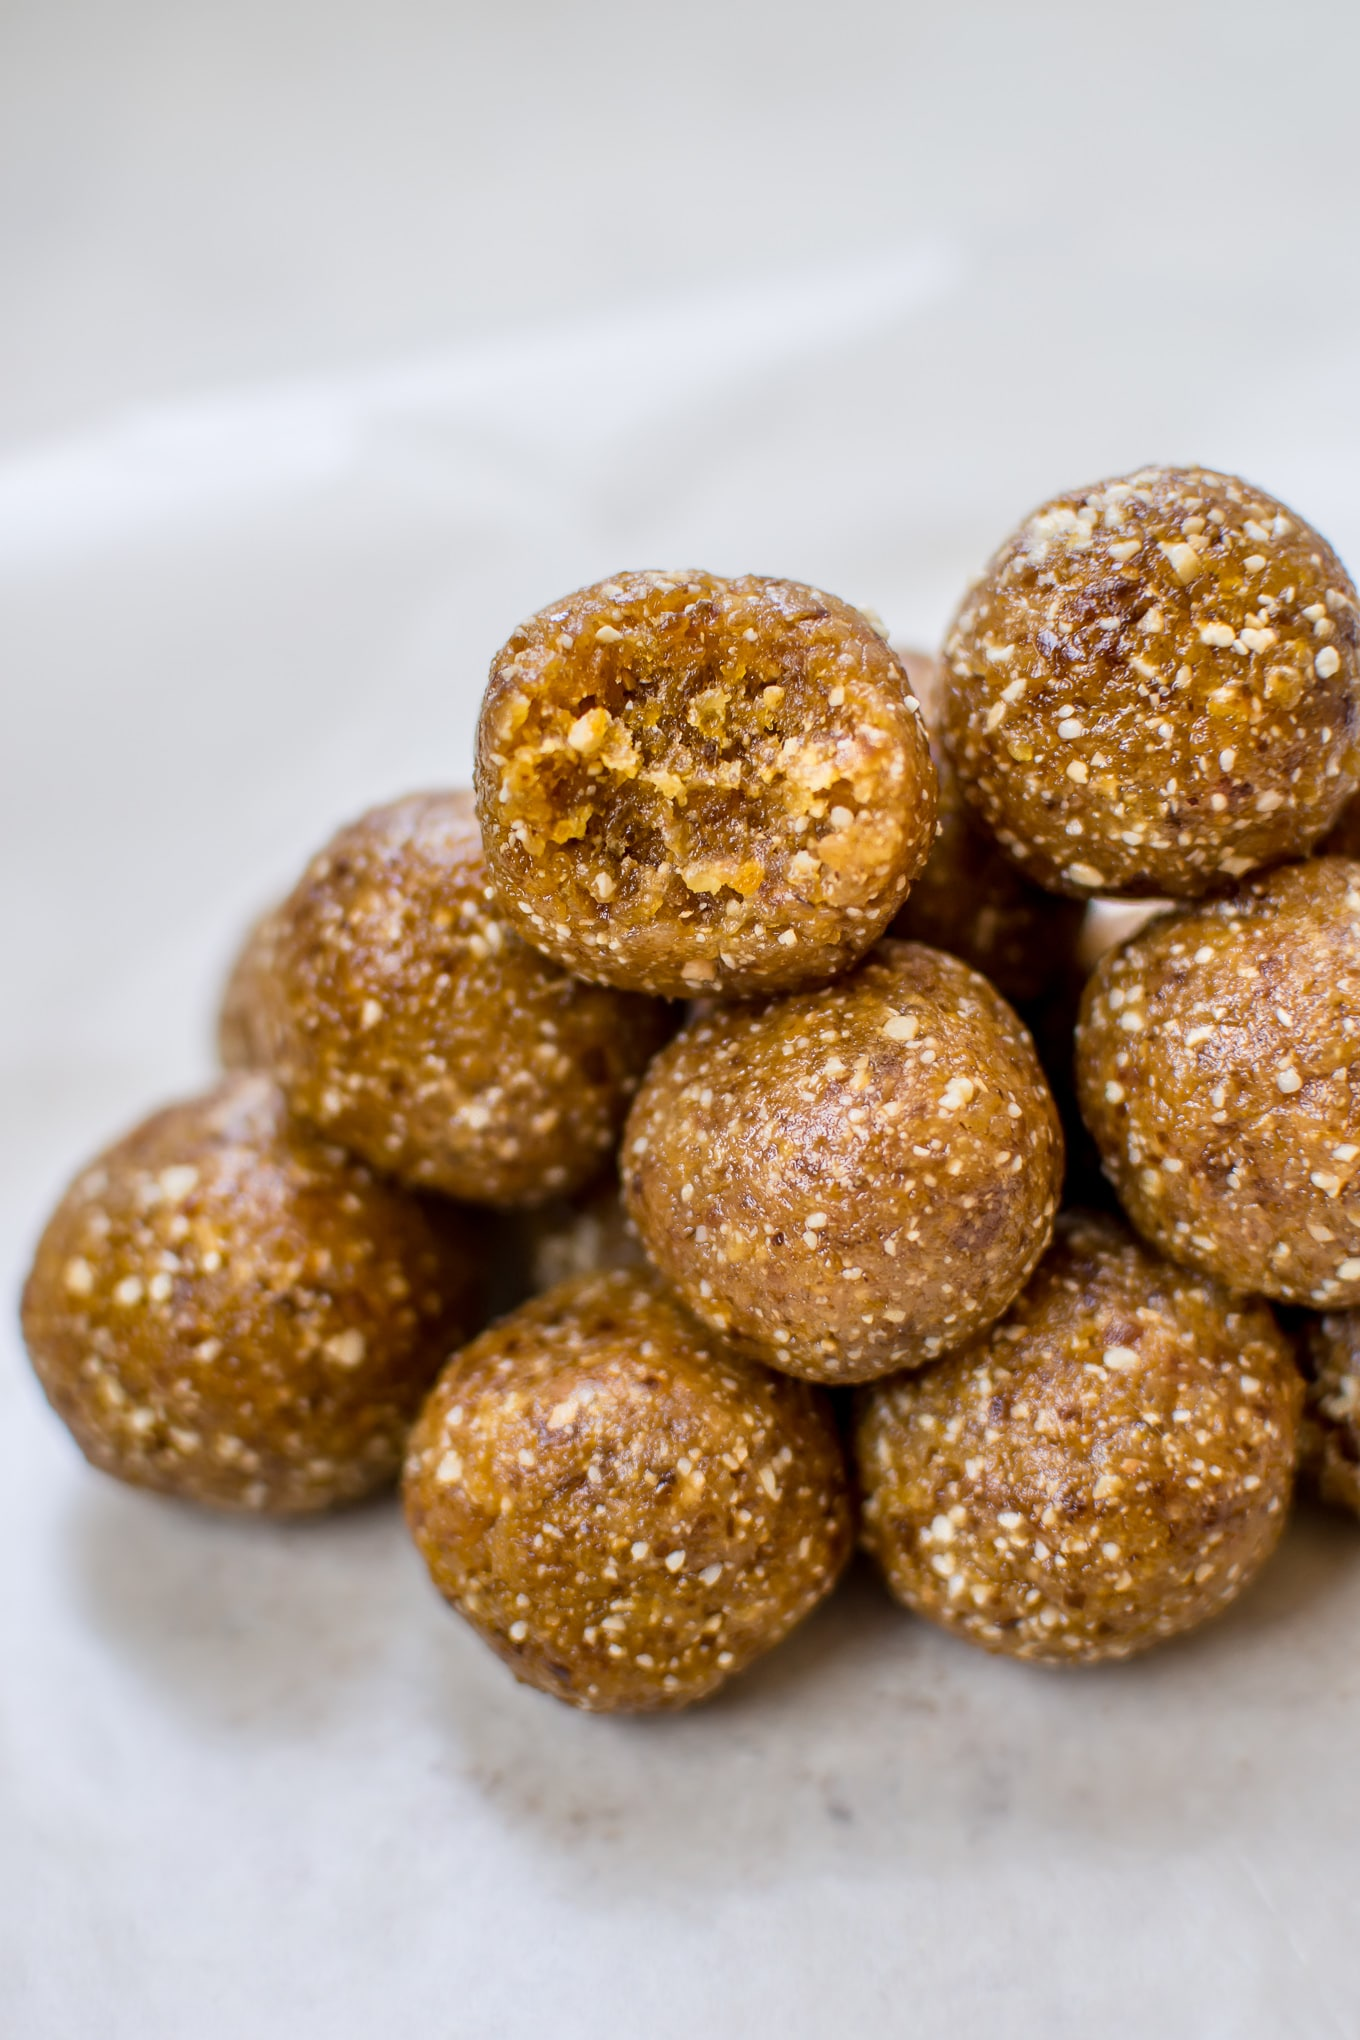 These apricot bliss balls are a tasty little snack that come together in a flash with only 3 ingredients!